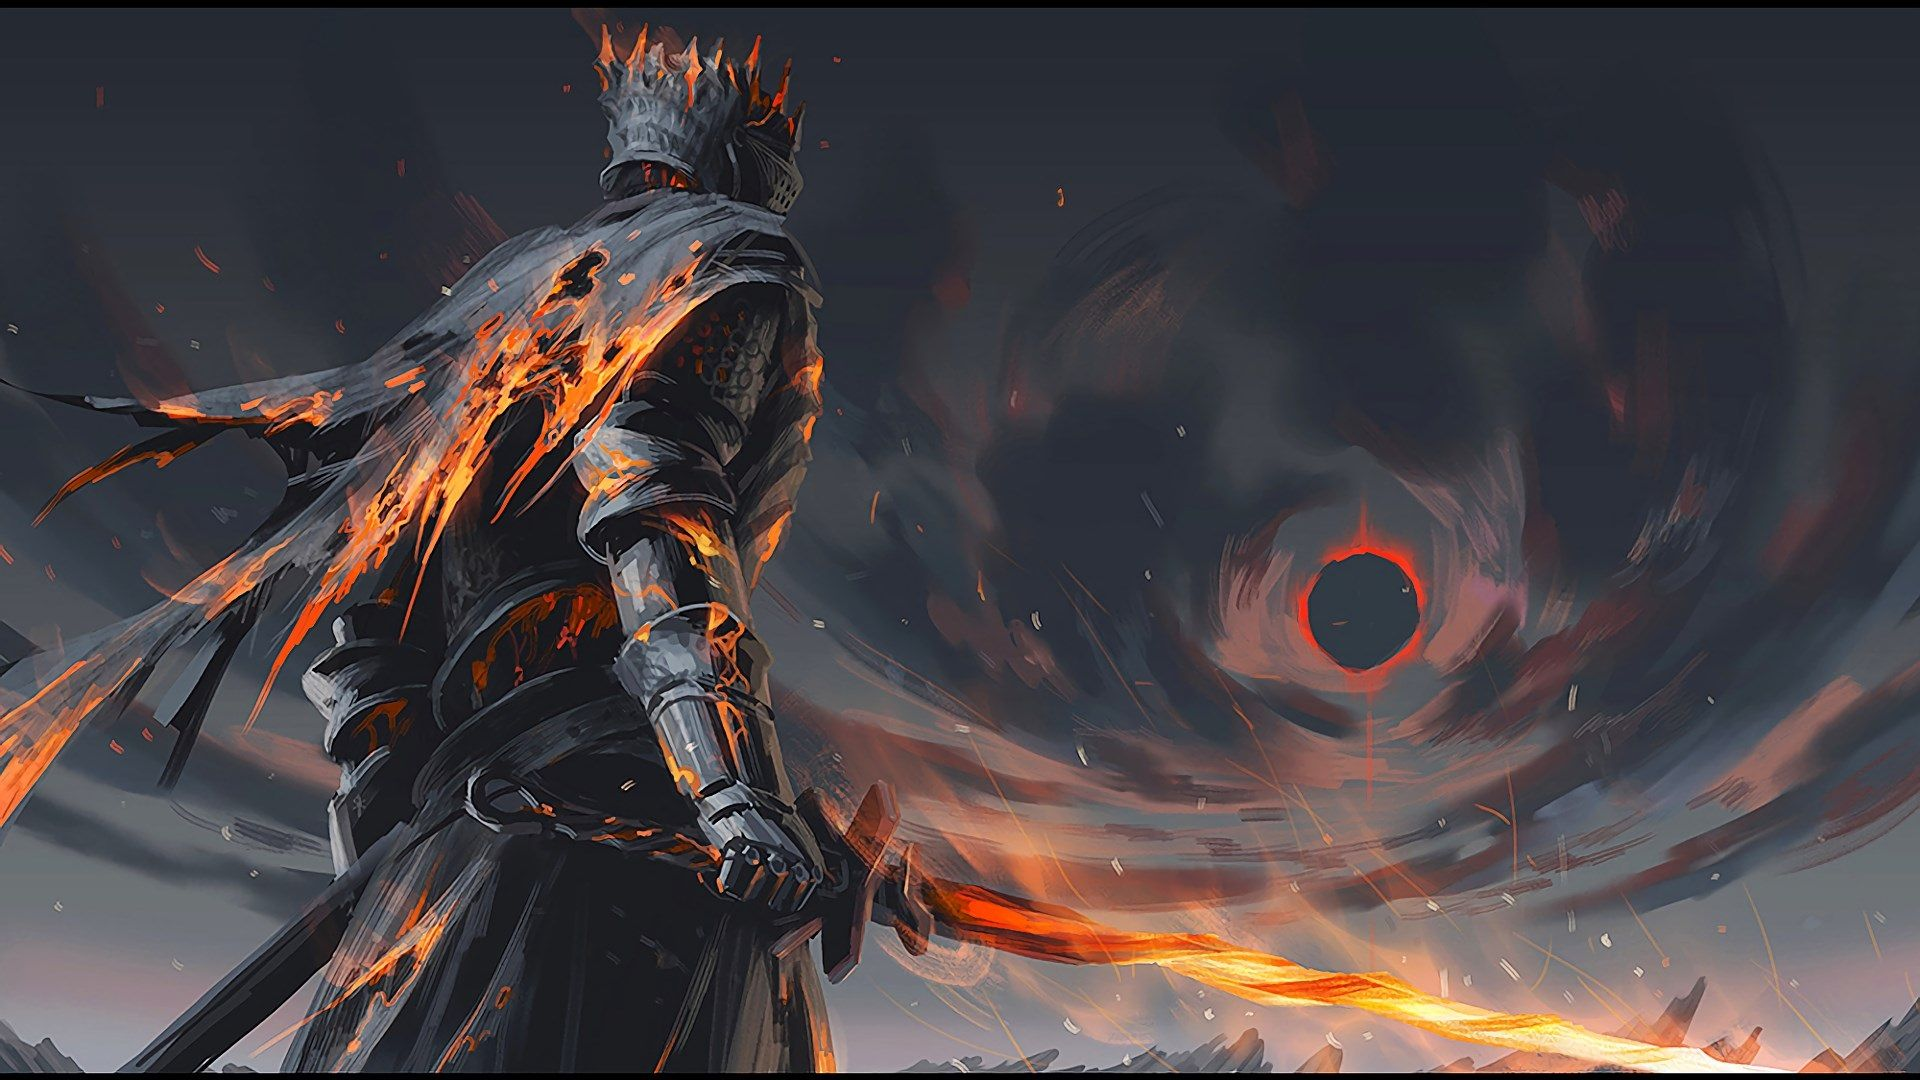 1920x1080 Dark Souls 3 Wallpaper Hd Top Dark Souls Wallpaper Dark Souls Art Dark Souls